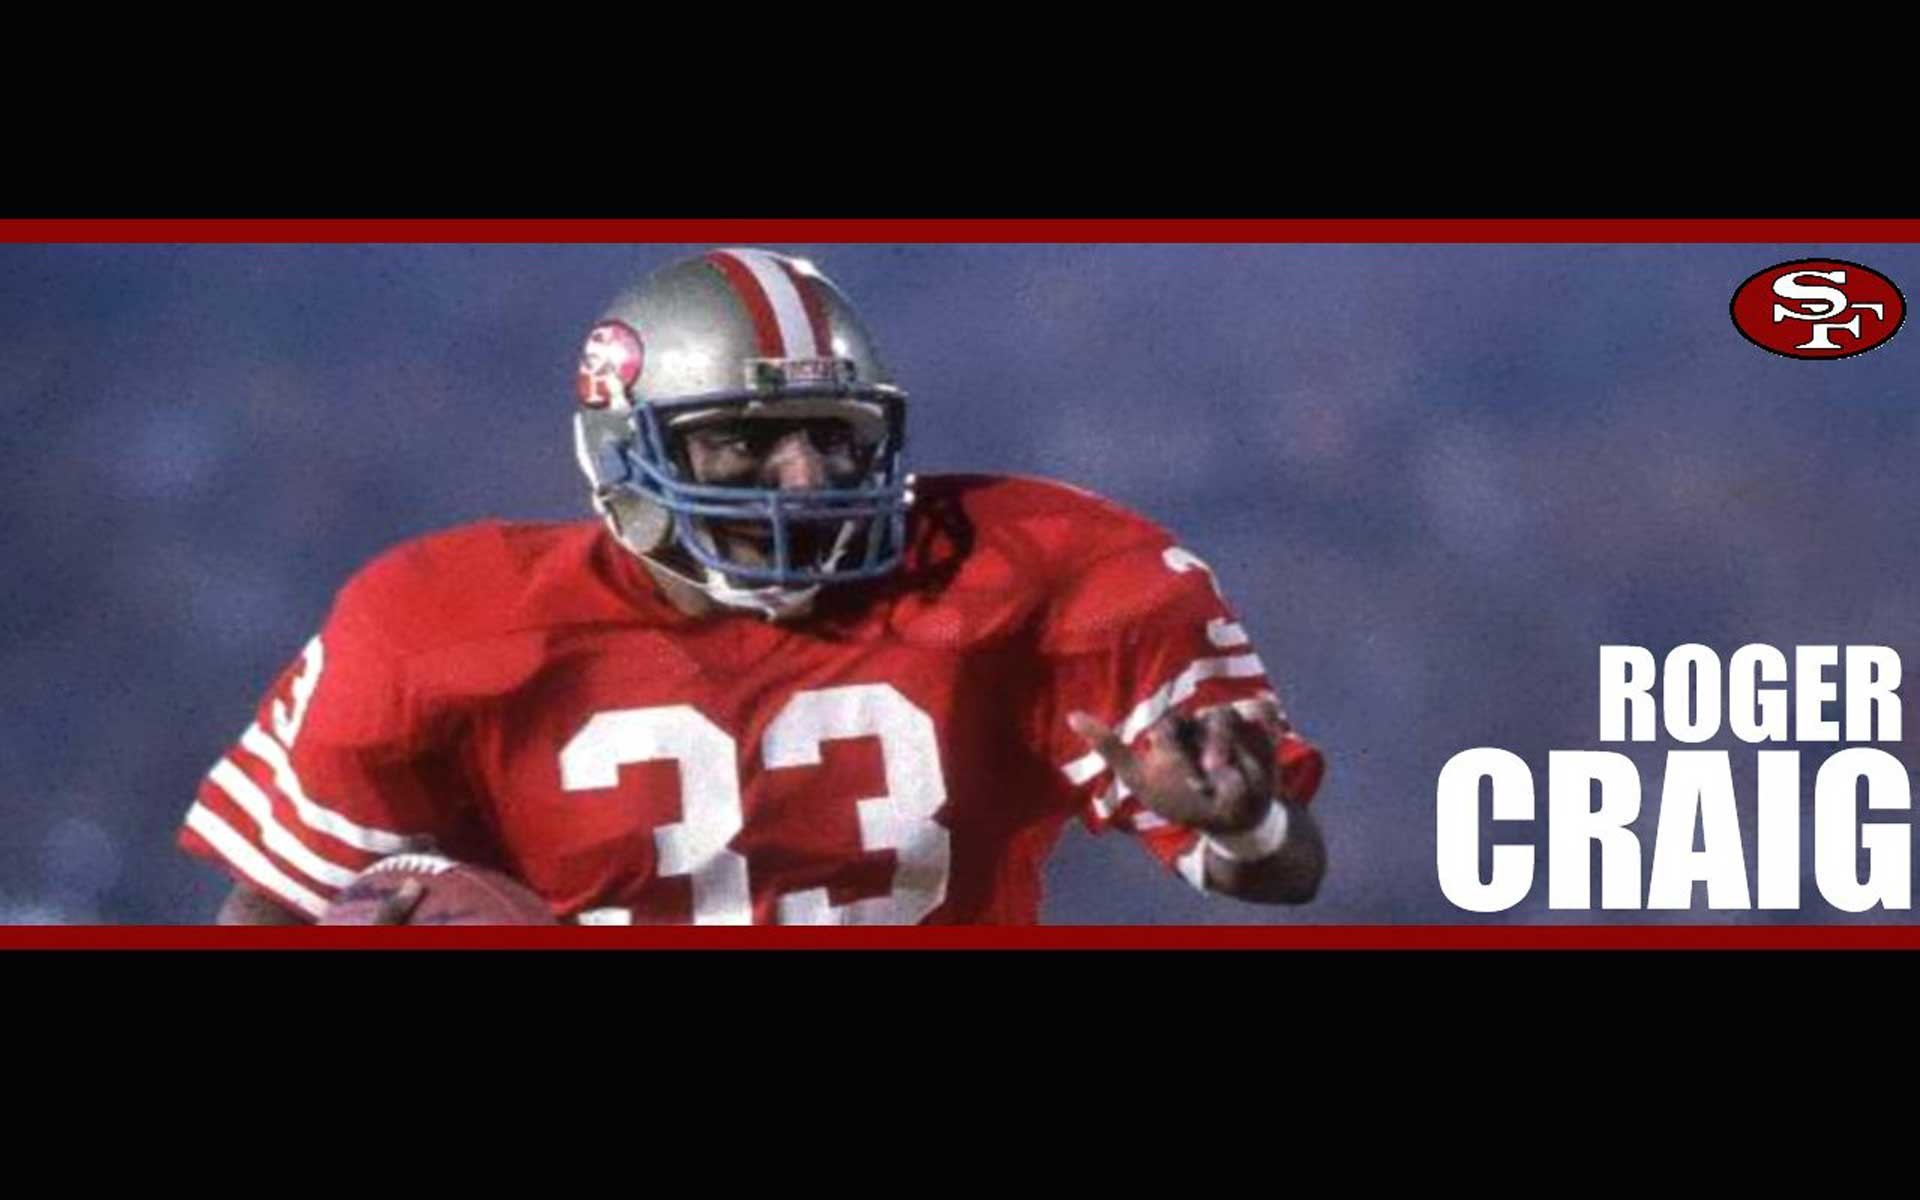 Roger Craig SF 49ers Wallpapers.